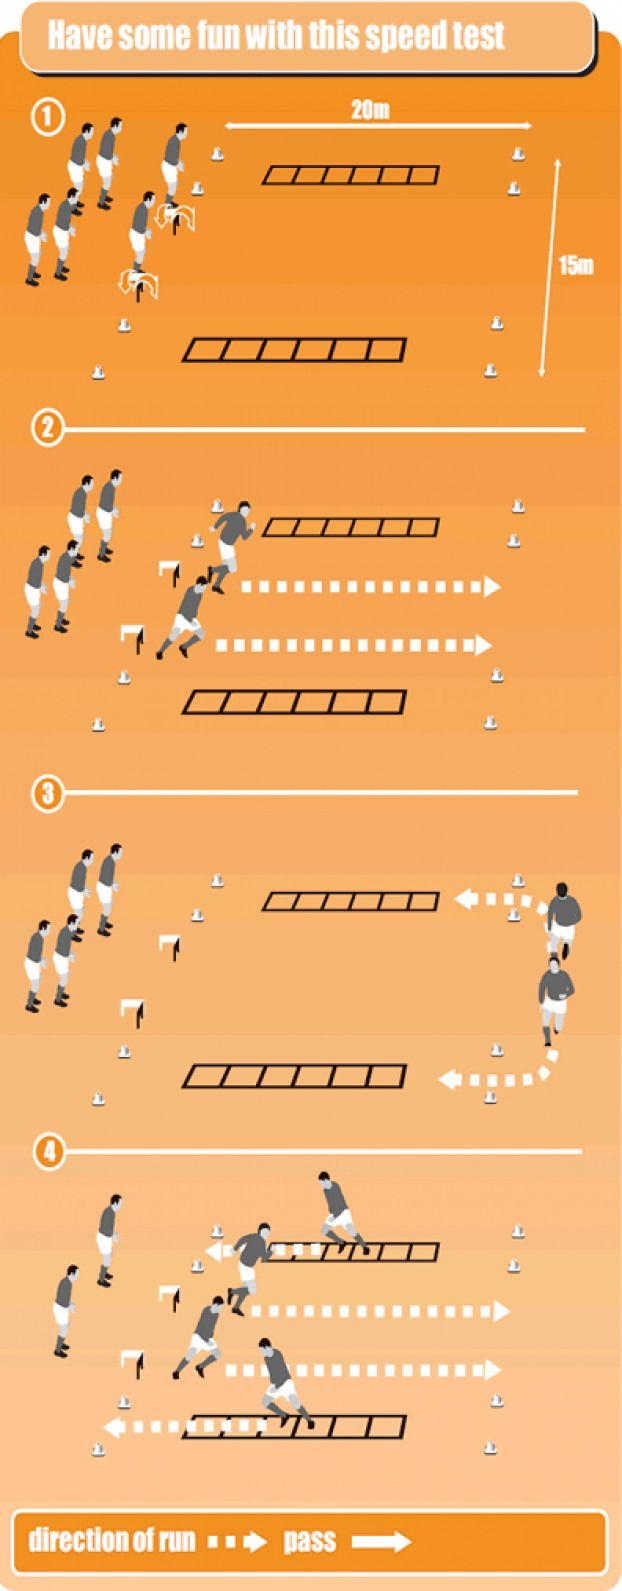 Soccer Drill Image423 Gif 3961013 Discover A Great Training To Improve Your Soccer Skills This Help Soccer Drills Soccer Training Soccer Conditioning Drills